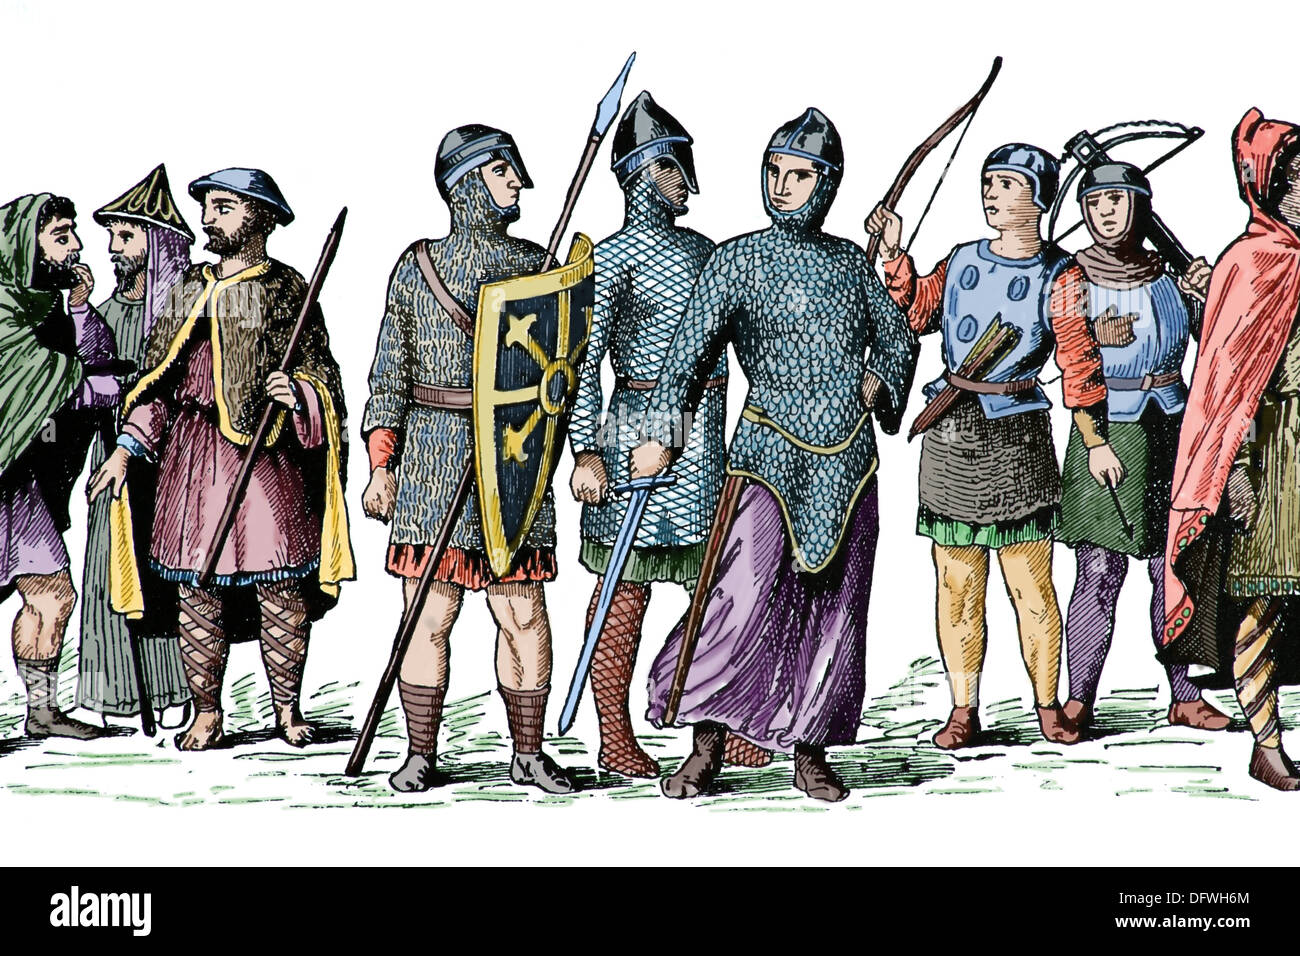 History. Medieval Europe. Normandy. 1000-1100. Norman costumes. Engraving. Later colouration. - Stock Image